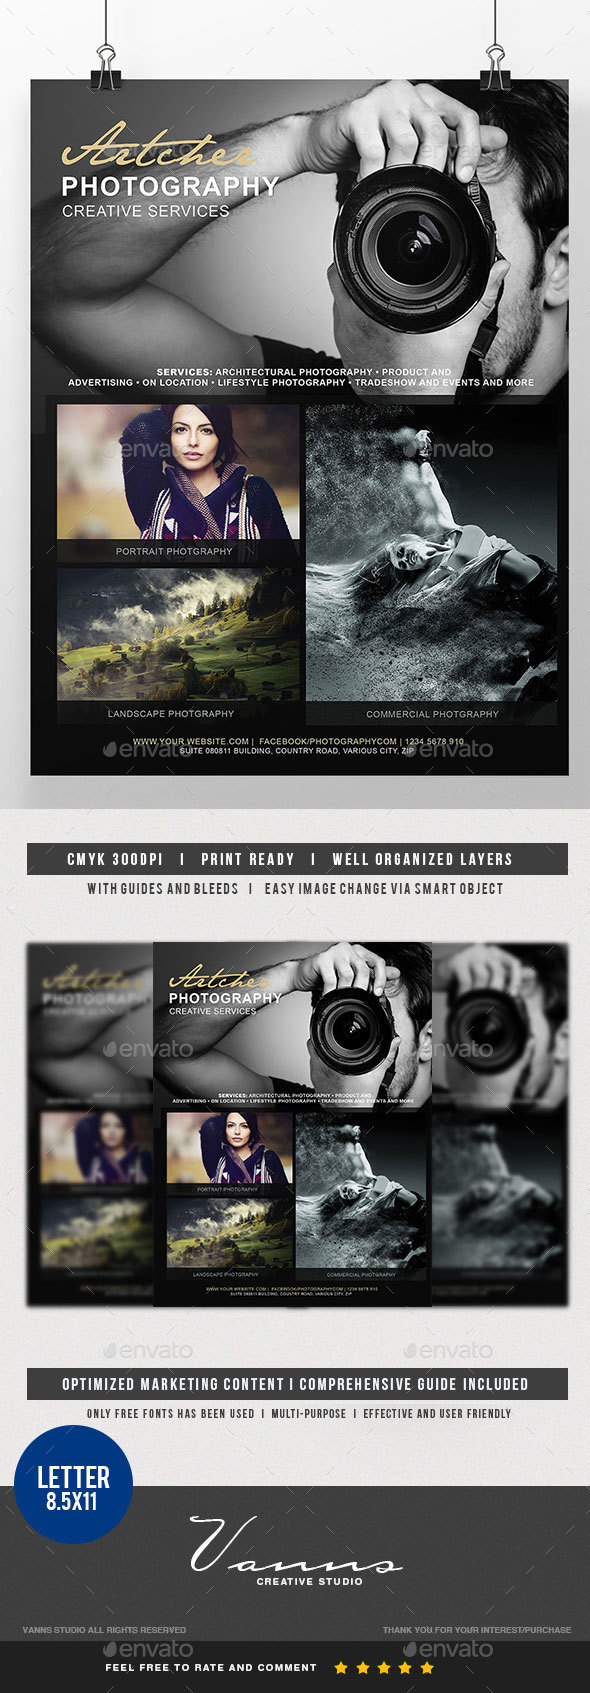 Photography Services Flyer - Commerce Flyers